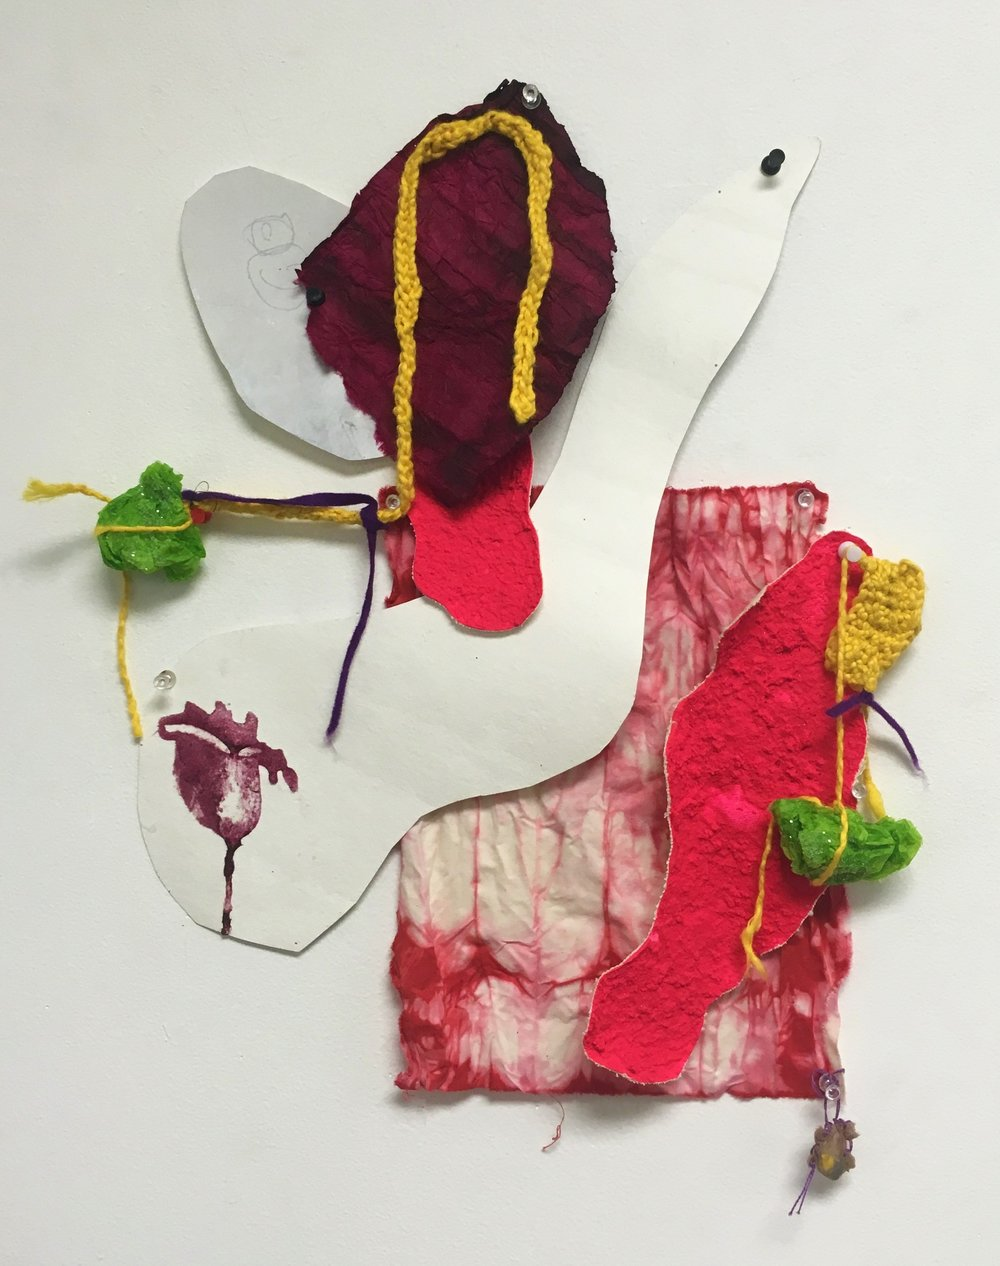 Palms (Together)- 2016  Paper, fabric, acrylic paint, glitter, crayon pieces, yarn and pins.